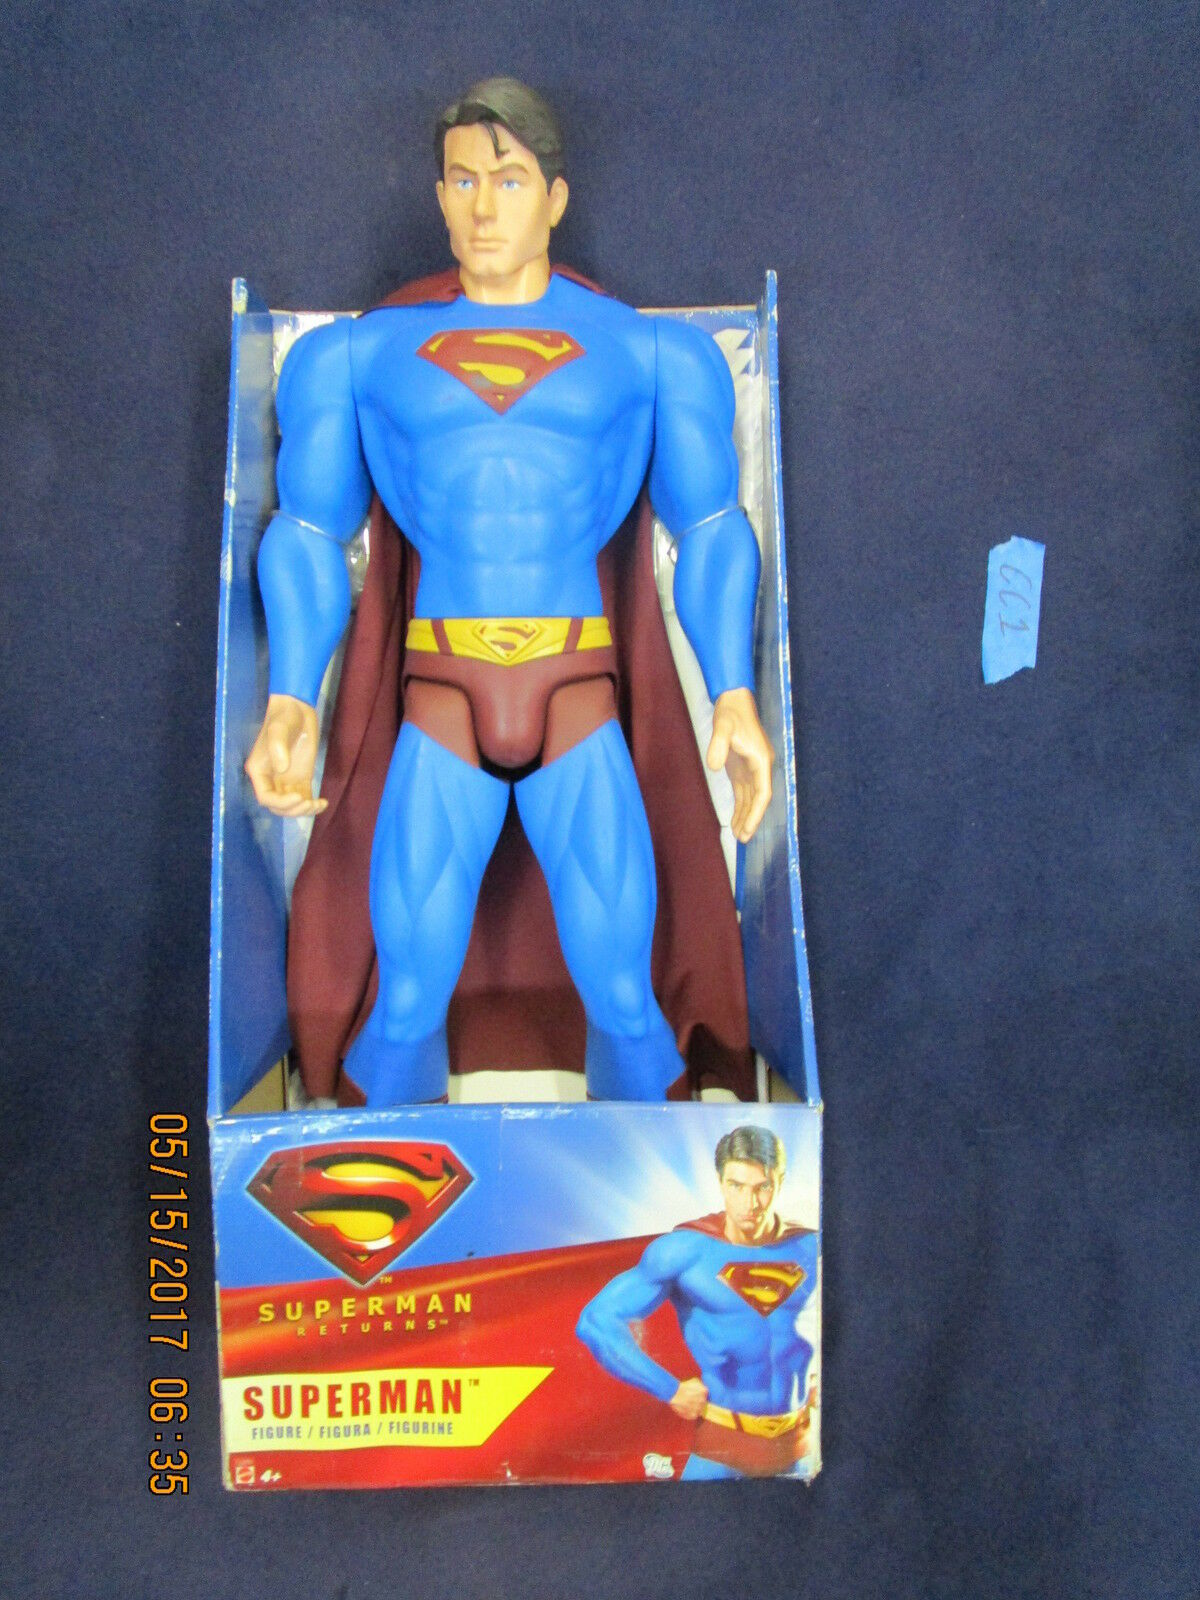 CC1_2_3 Mattel DC Movie Master Lot GIANT SUPERMAN RETURNS 30 INCH ACTION FIGURE